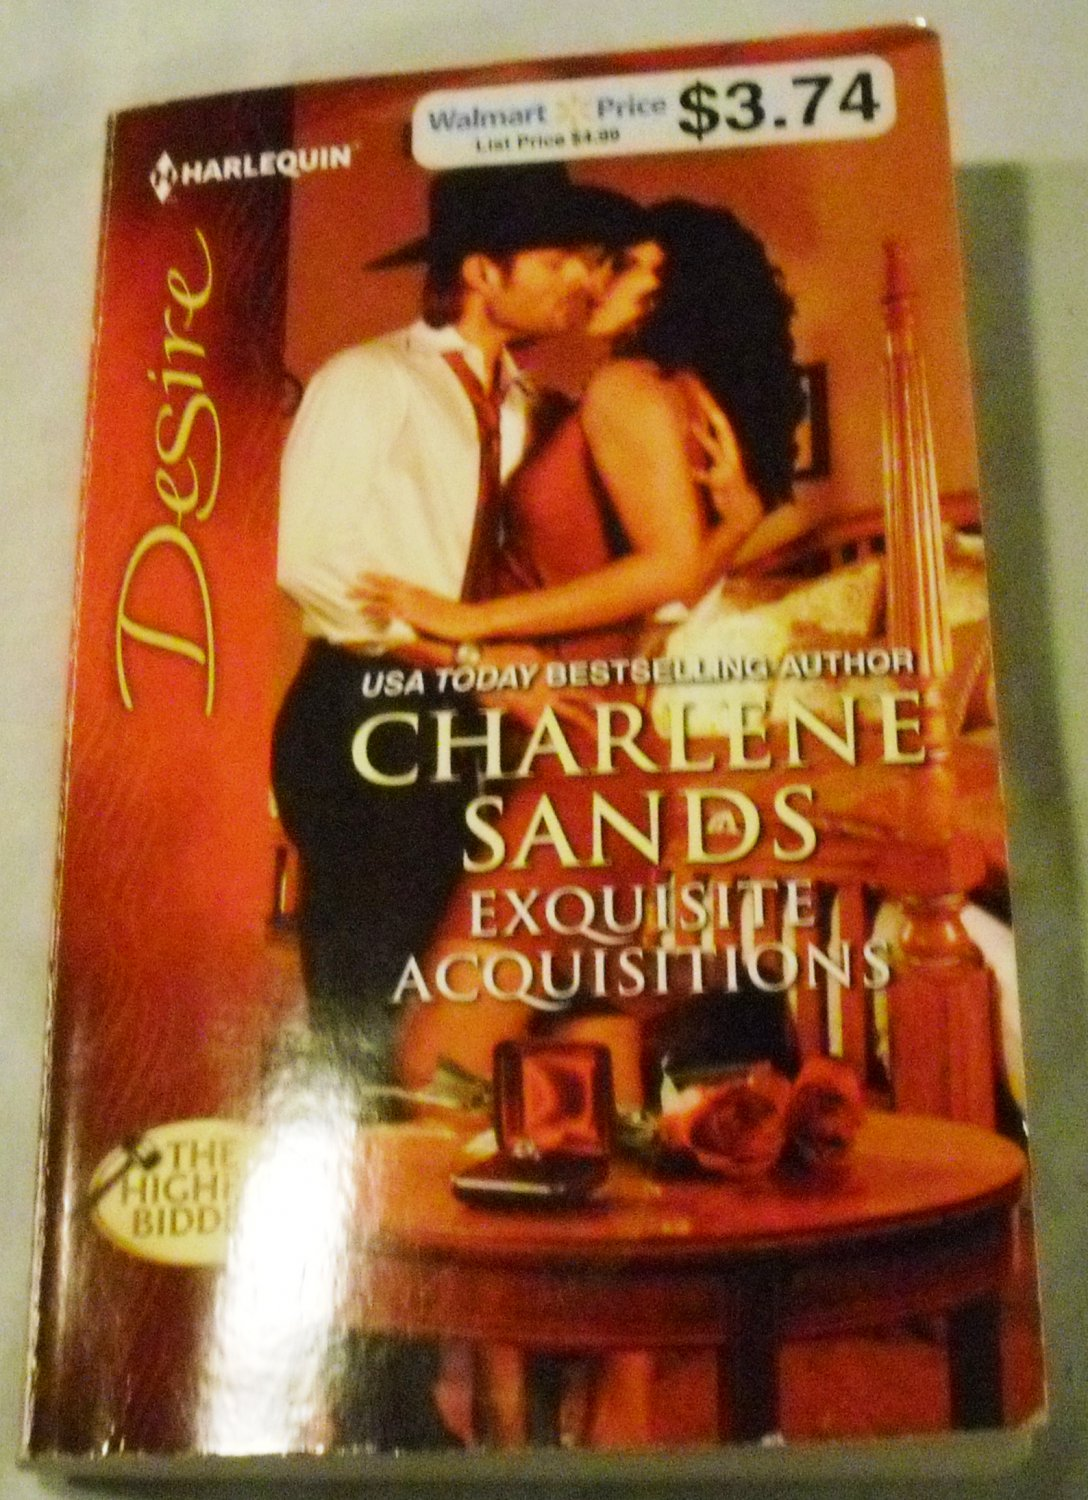 Exquisite Acquisitions (Harlequin Desire) by Charlene Sands (Aug 7, 2012)